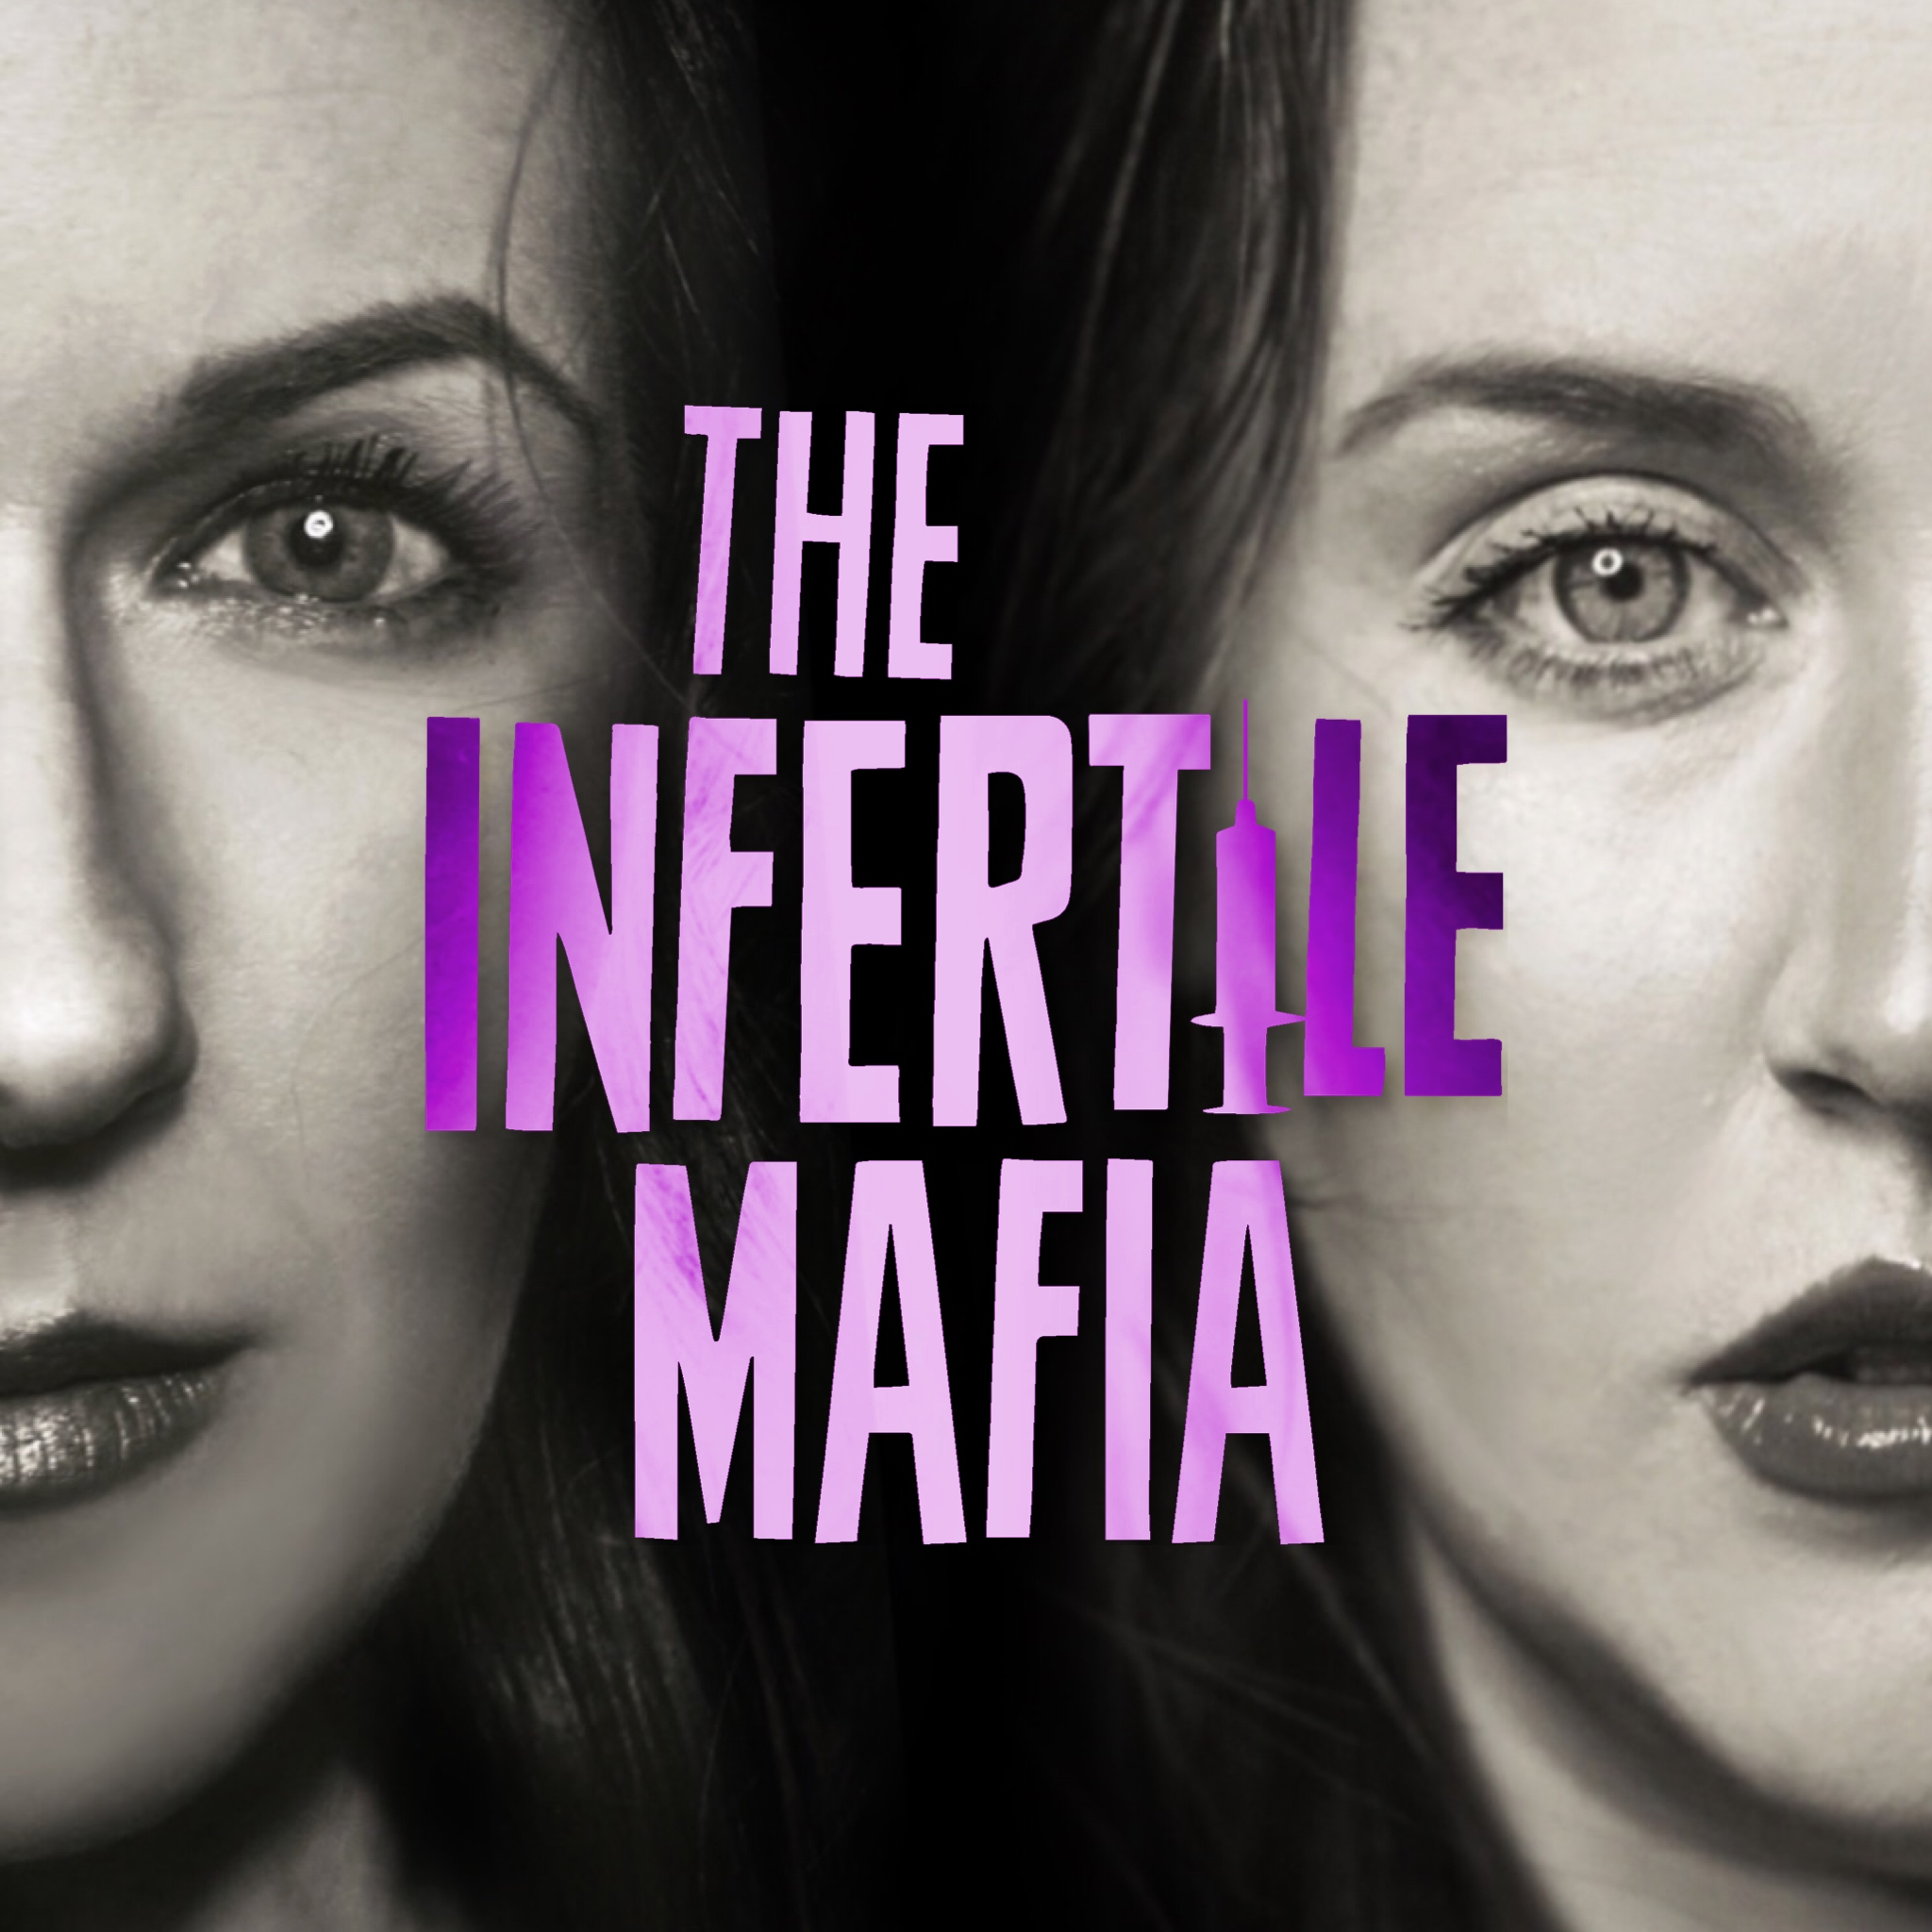 The Infertile Mafia: Real talk about infertility, IVF, and trying to conceive.